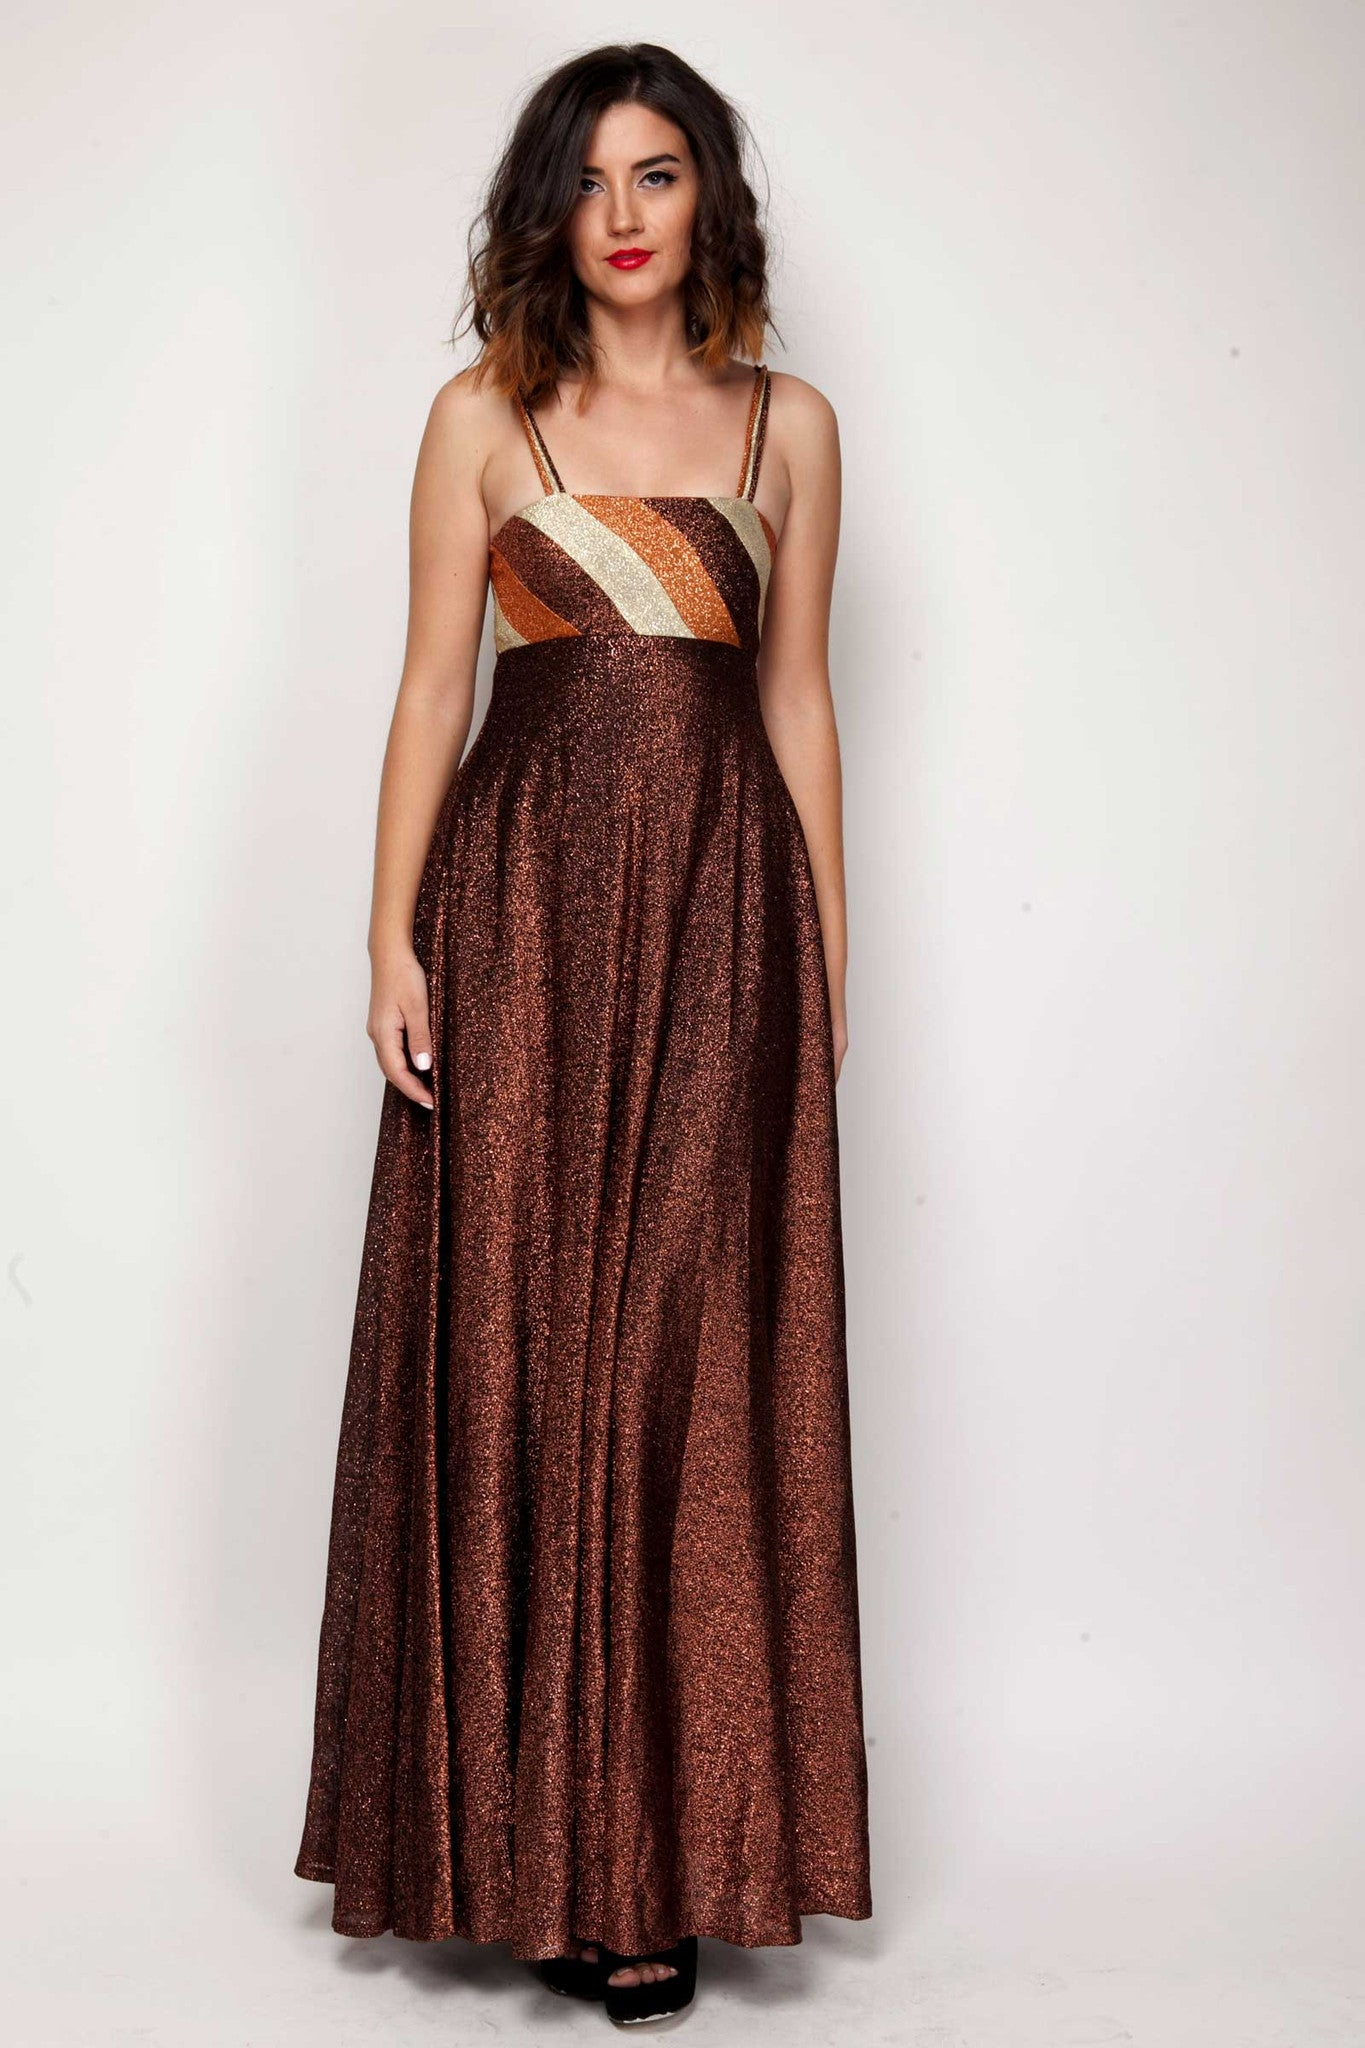 Dahlia maxi metallic dress